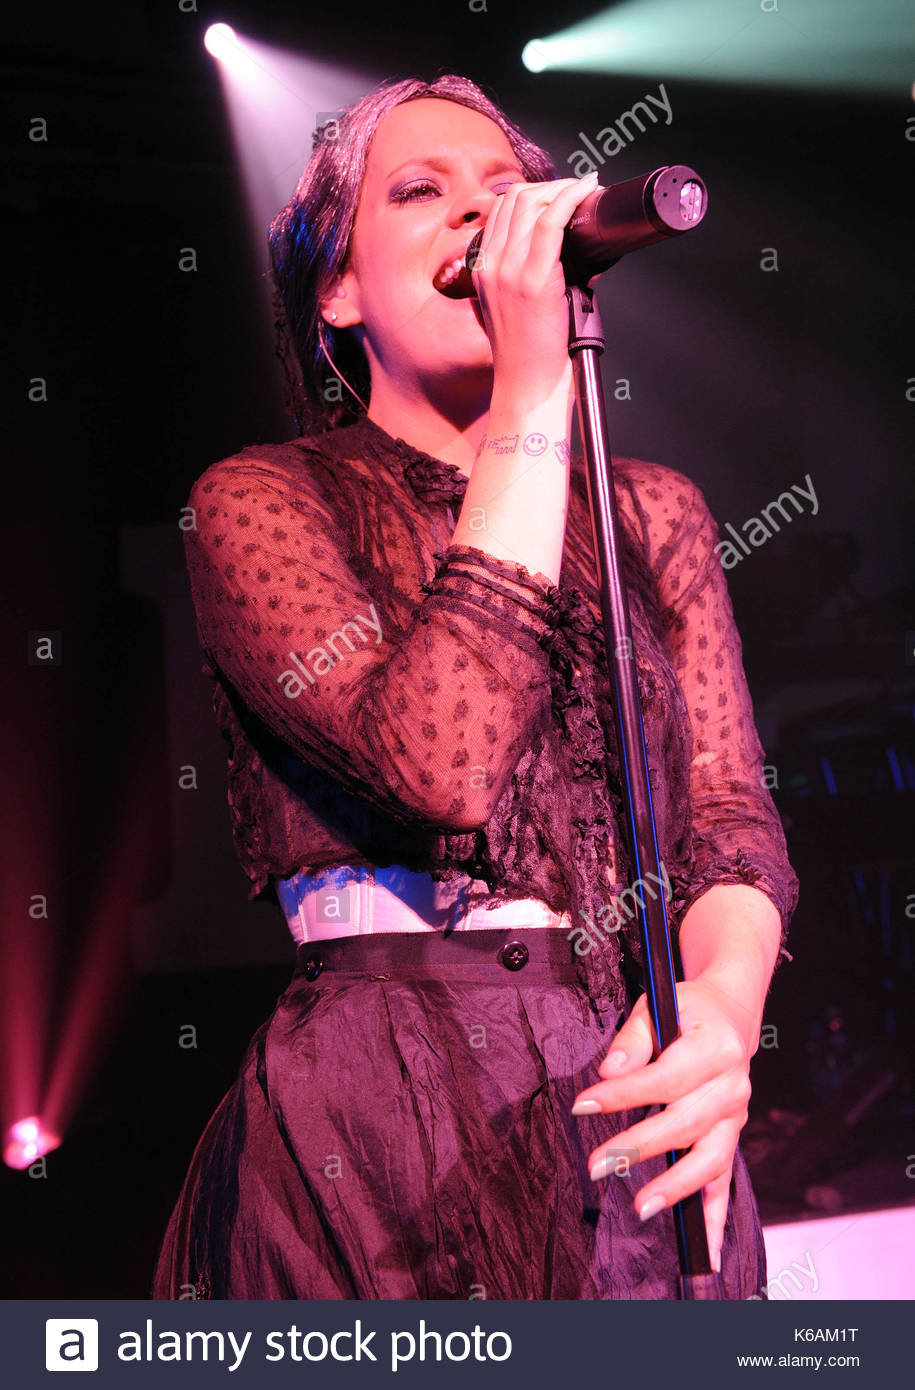 Lily Allen performs special gig with Pink in LA